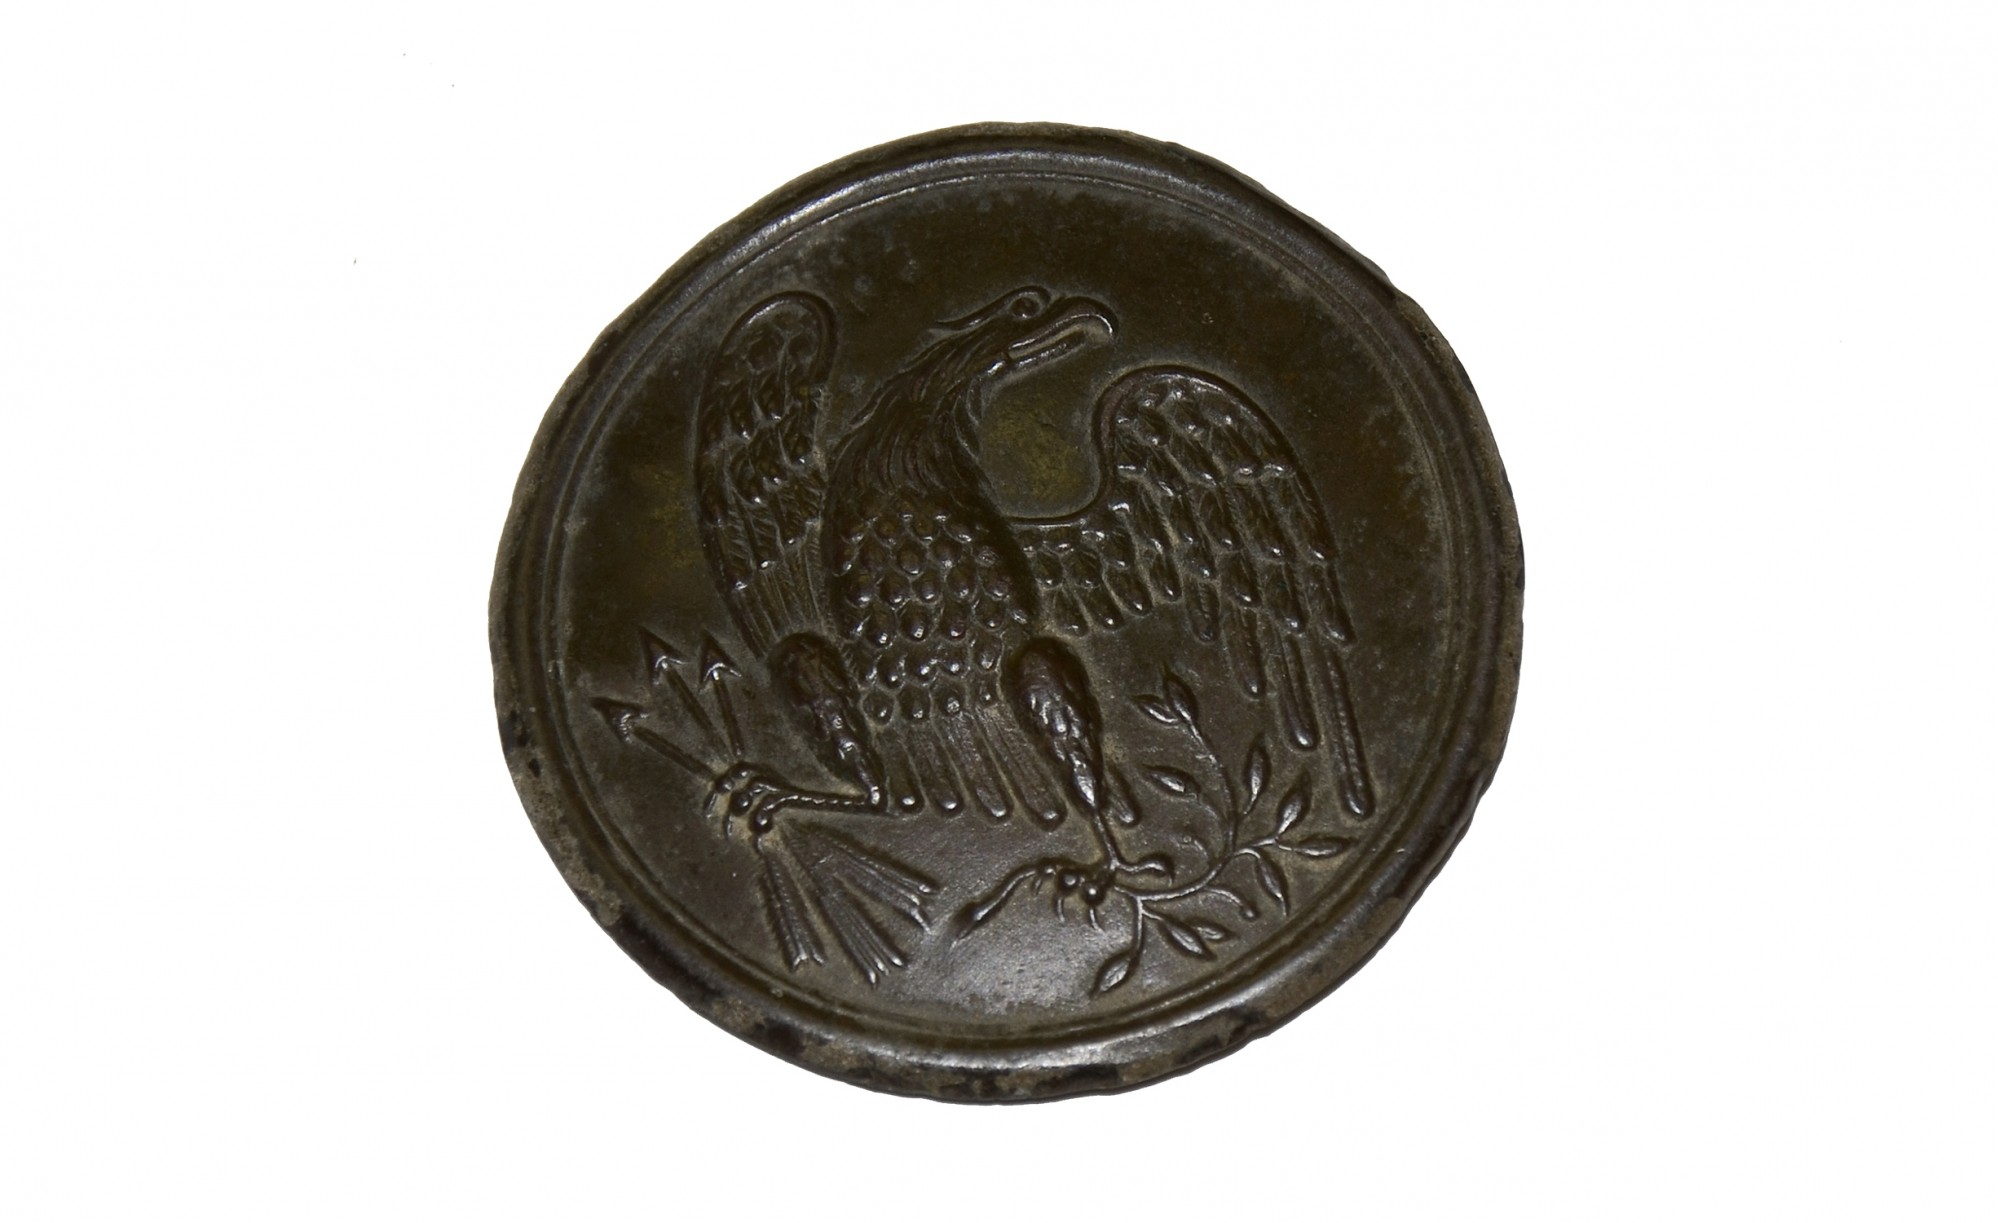 US PATTERN 1826 EAGLE BREAST PLATE FROM THE ROSENSTEEL GETTYSBURG COLLECTION